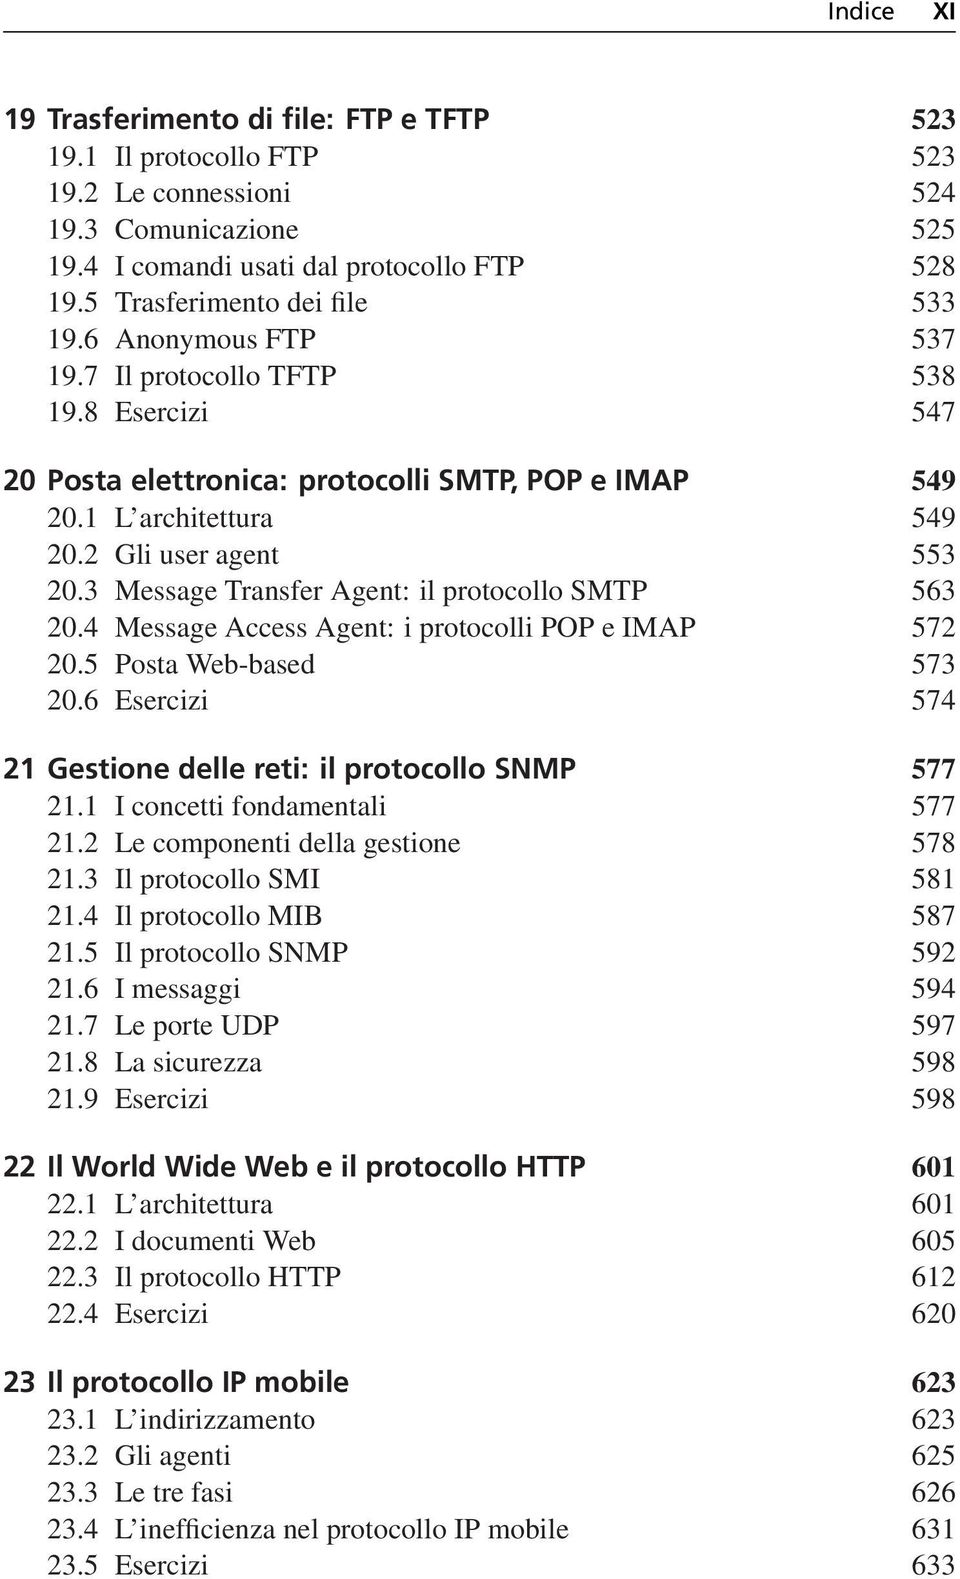 2 Gli user agent 553 20.3 Message Transfer Agent: il protocollo SMTP 563 20.4 Message Access Agent: i protocolli POP e IMAP 572 20.5 Posta Web-based 573 20.